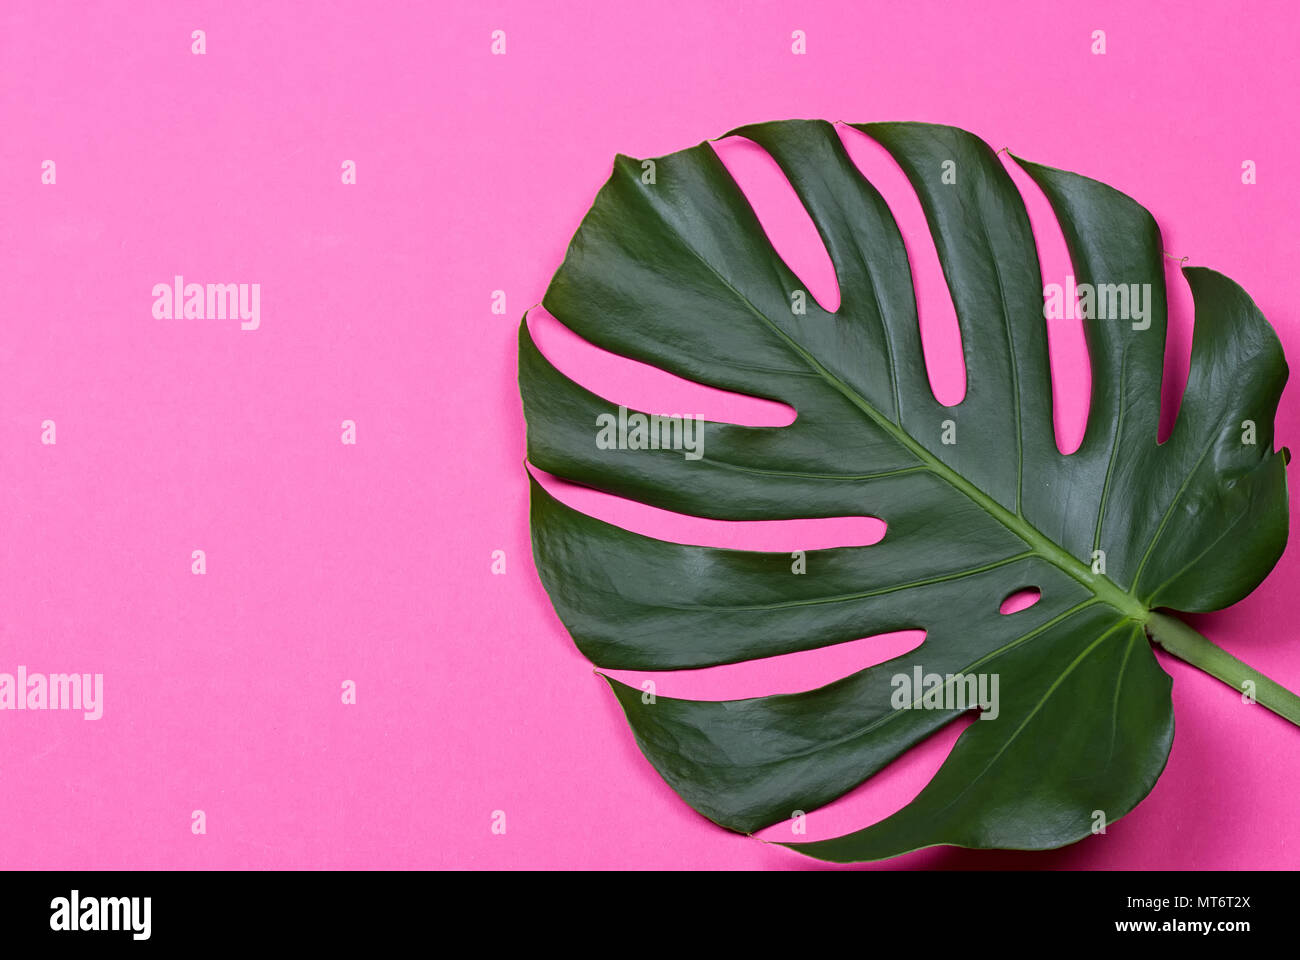 a monstera leaf on the pink background - Stock Image